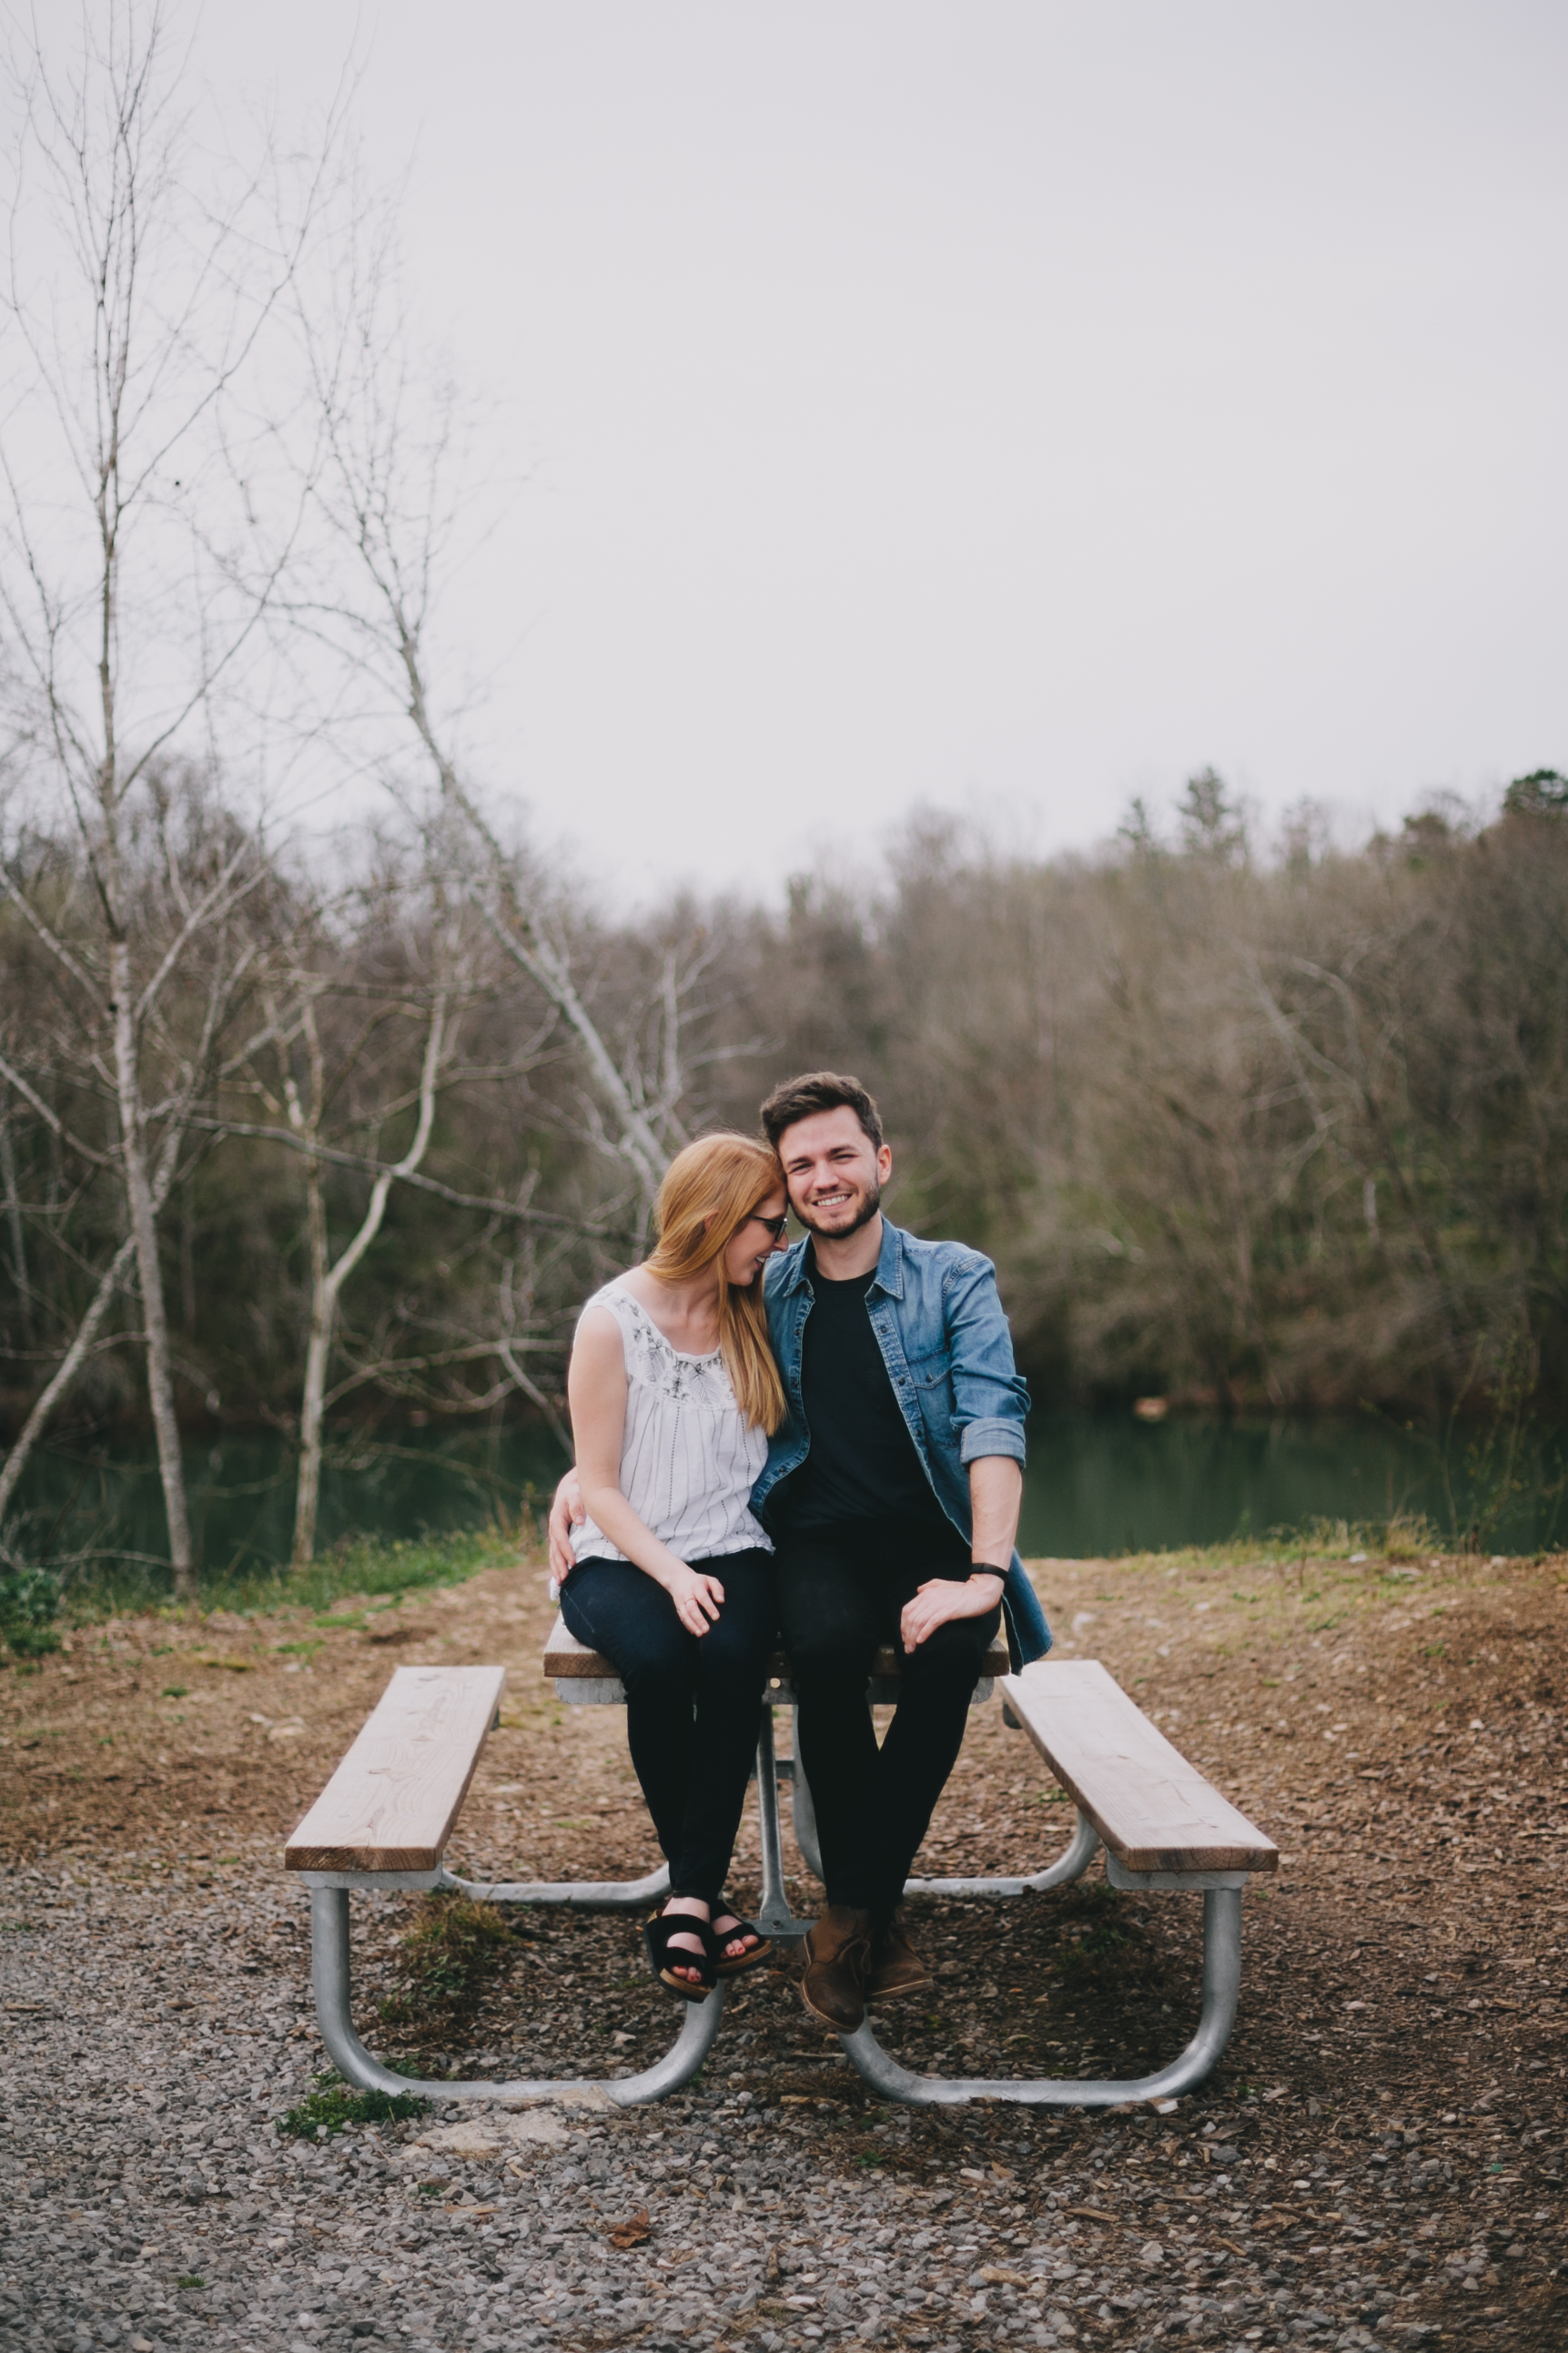 Erin + Zack Couples Session-9.jpg